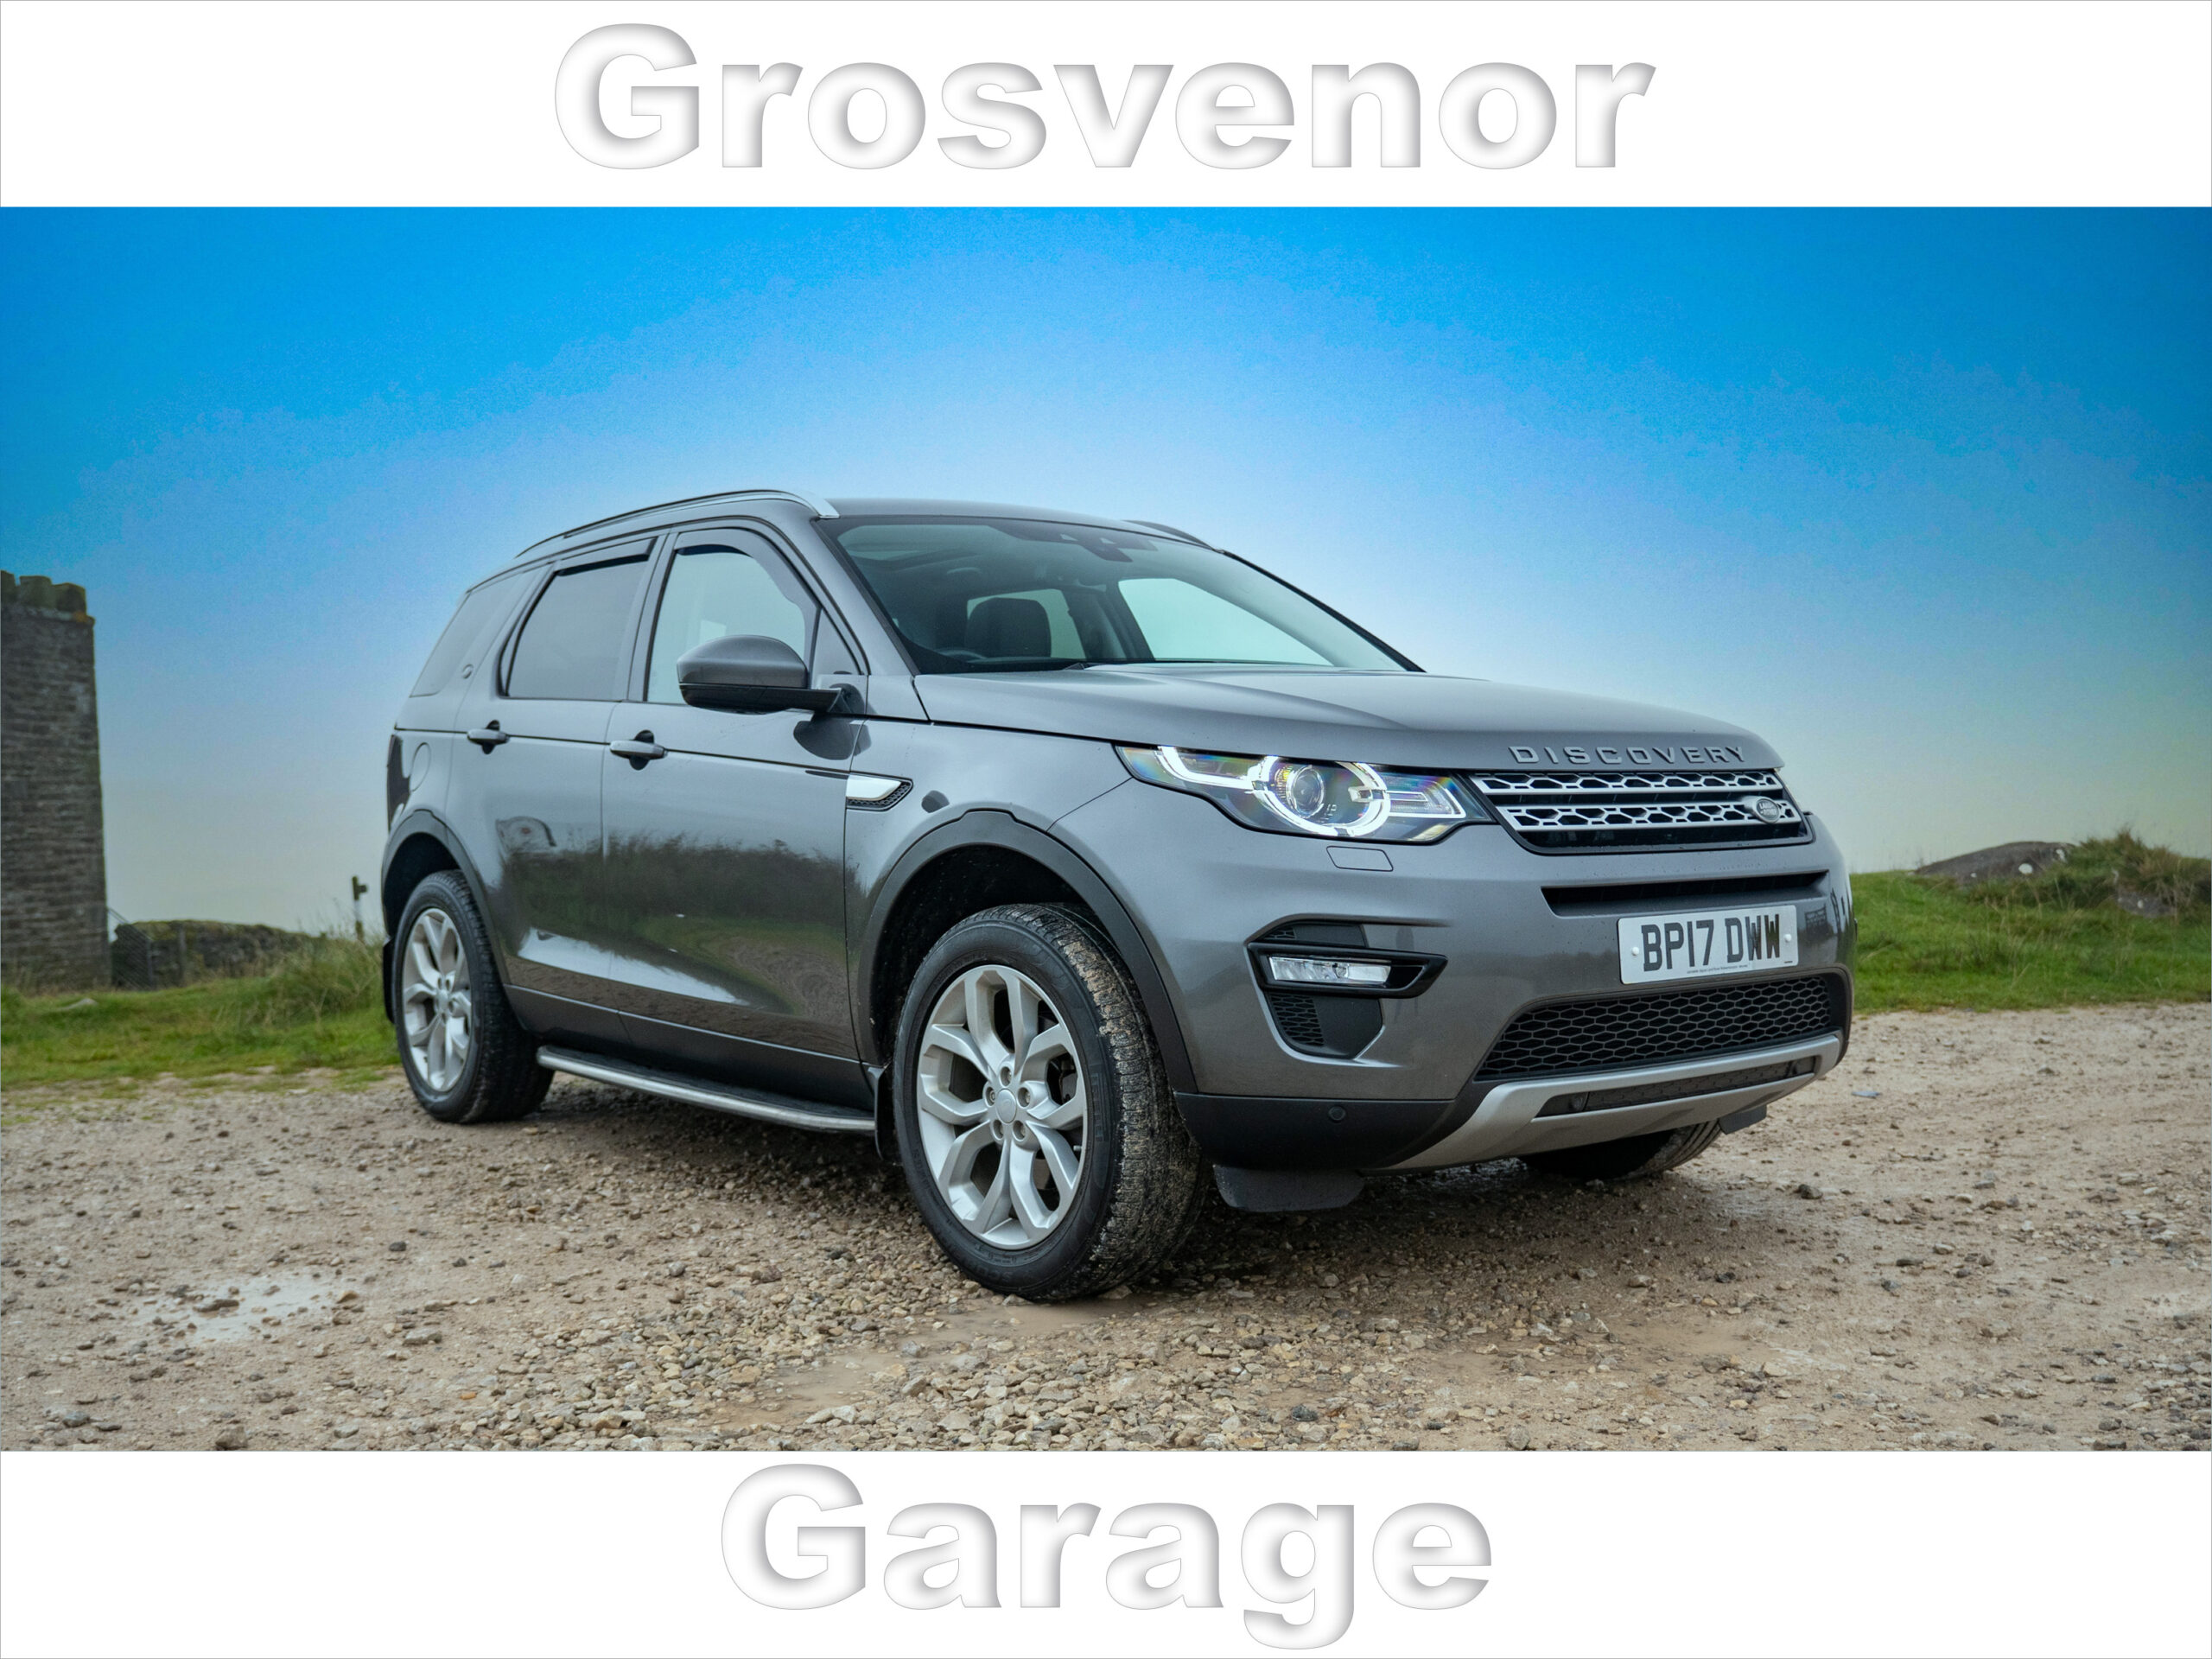 2017 (17) LAND ROVER DISCOVERY SPORT 2.0 TD4 HSE 5DR